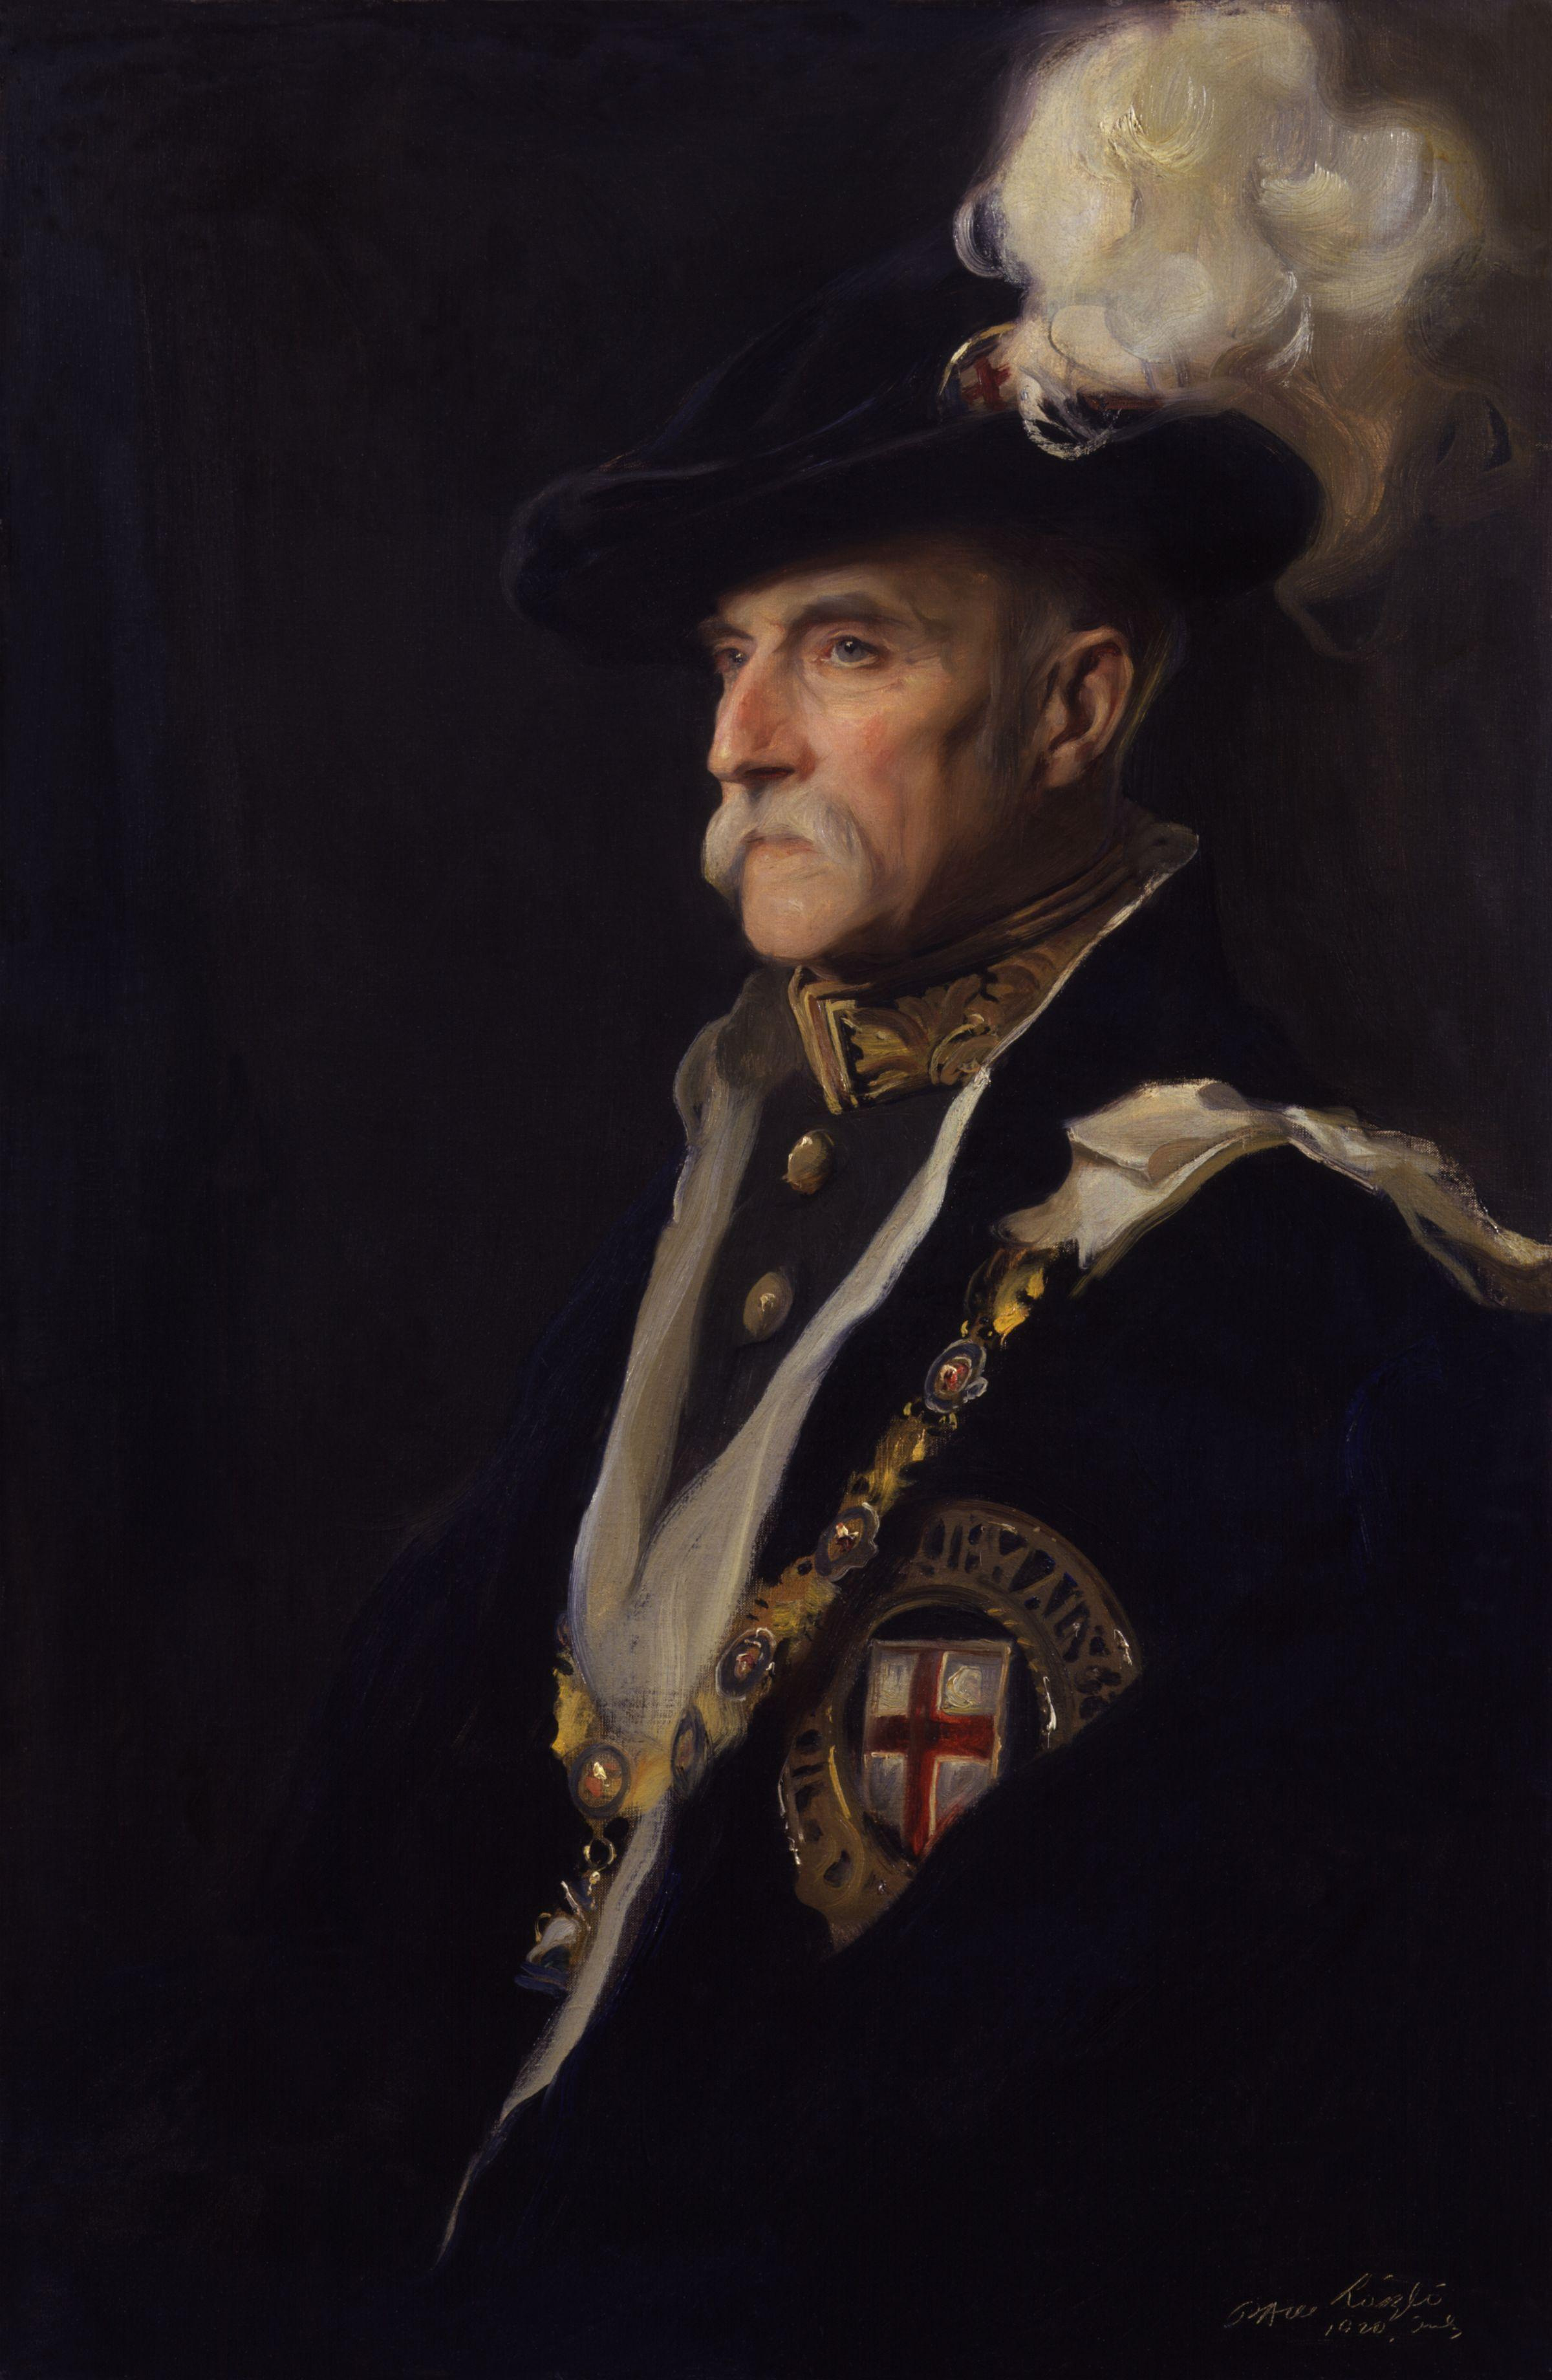 https://upload.wikimedia.org/wikipedia/commons/e/eb/Henry_Charles_Keith_Petty-Fitzmaurice%2C_5th_Marquess_of_Lansdowne_by_Philip_Alexius_de_L%C3%A1szl%C3%B3.jpg